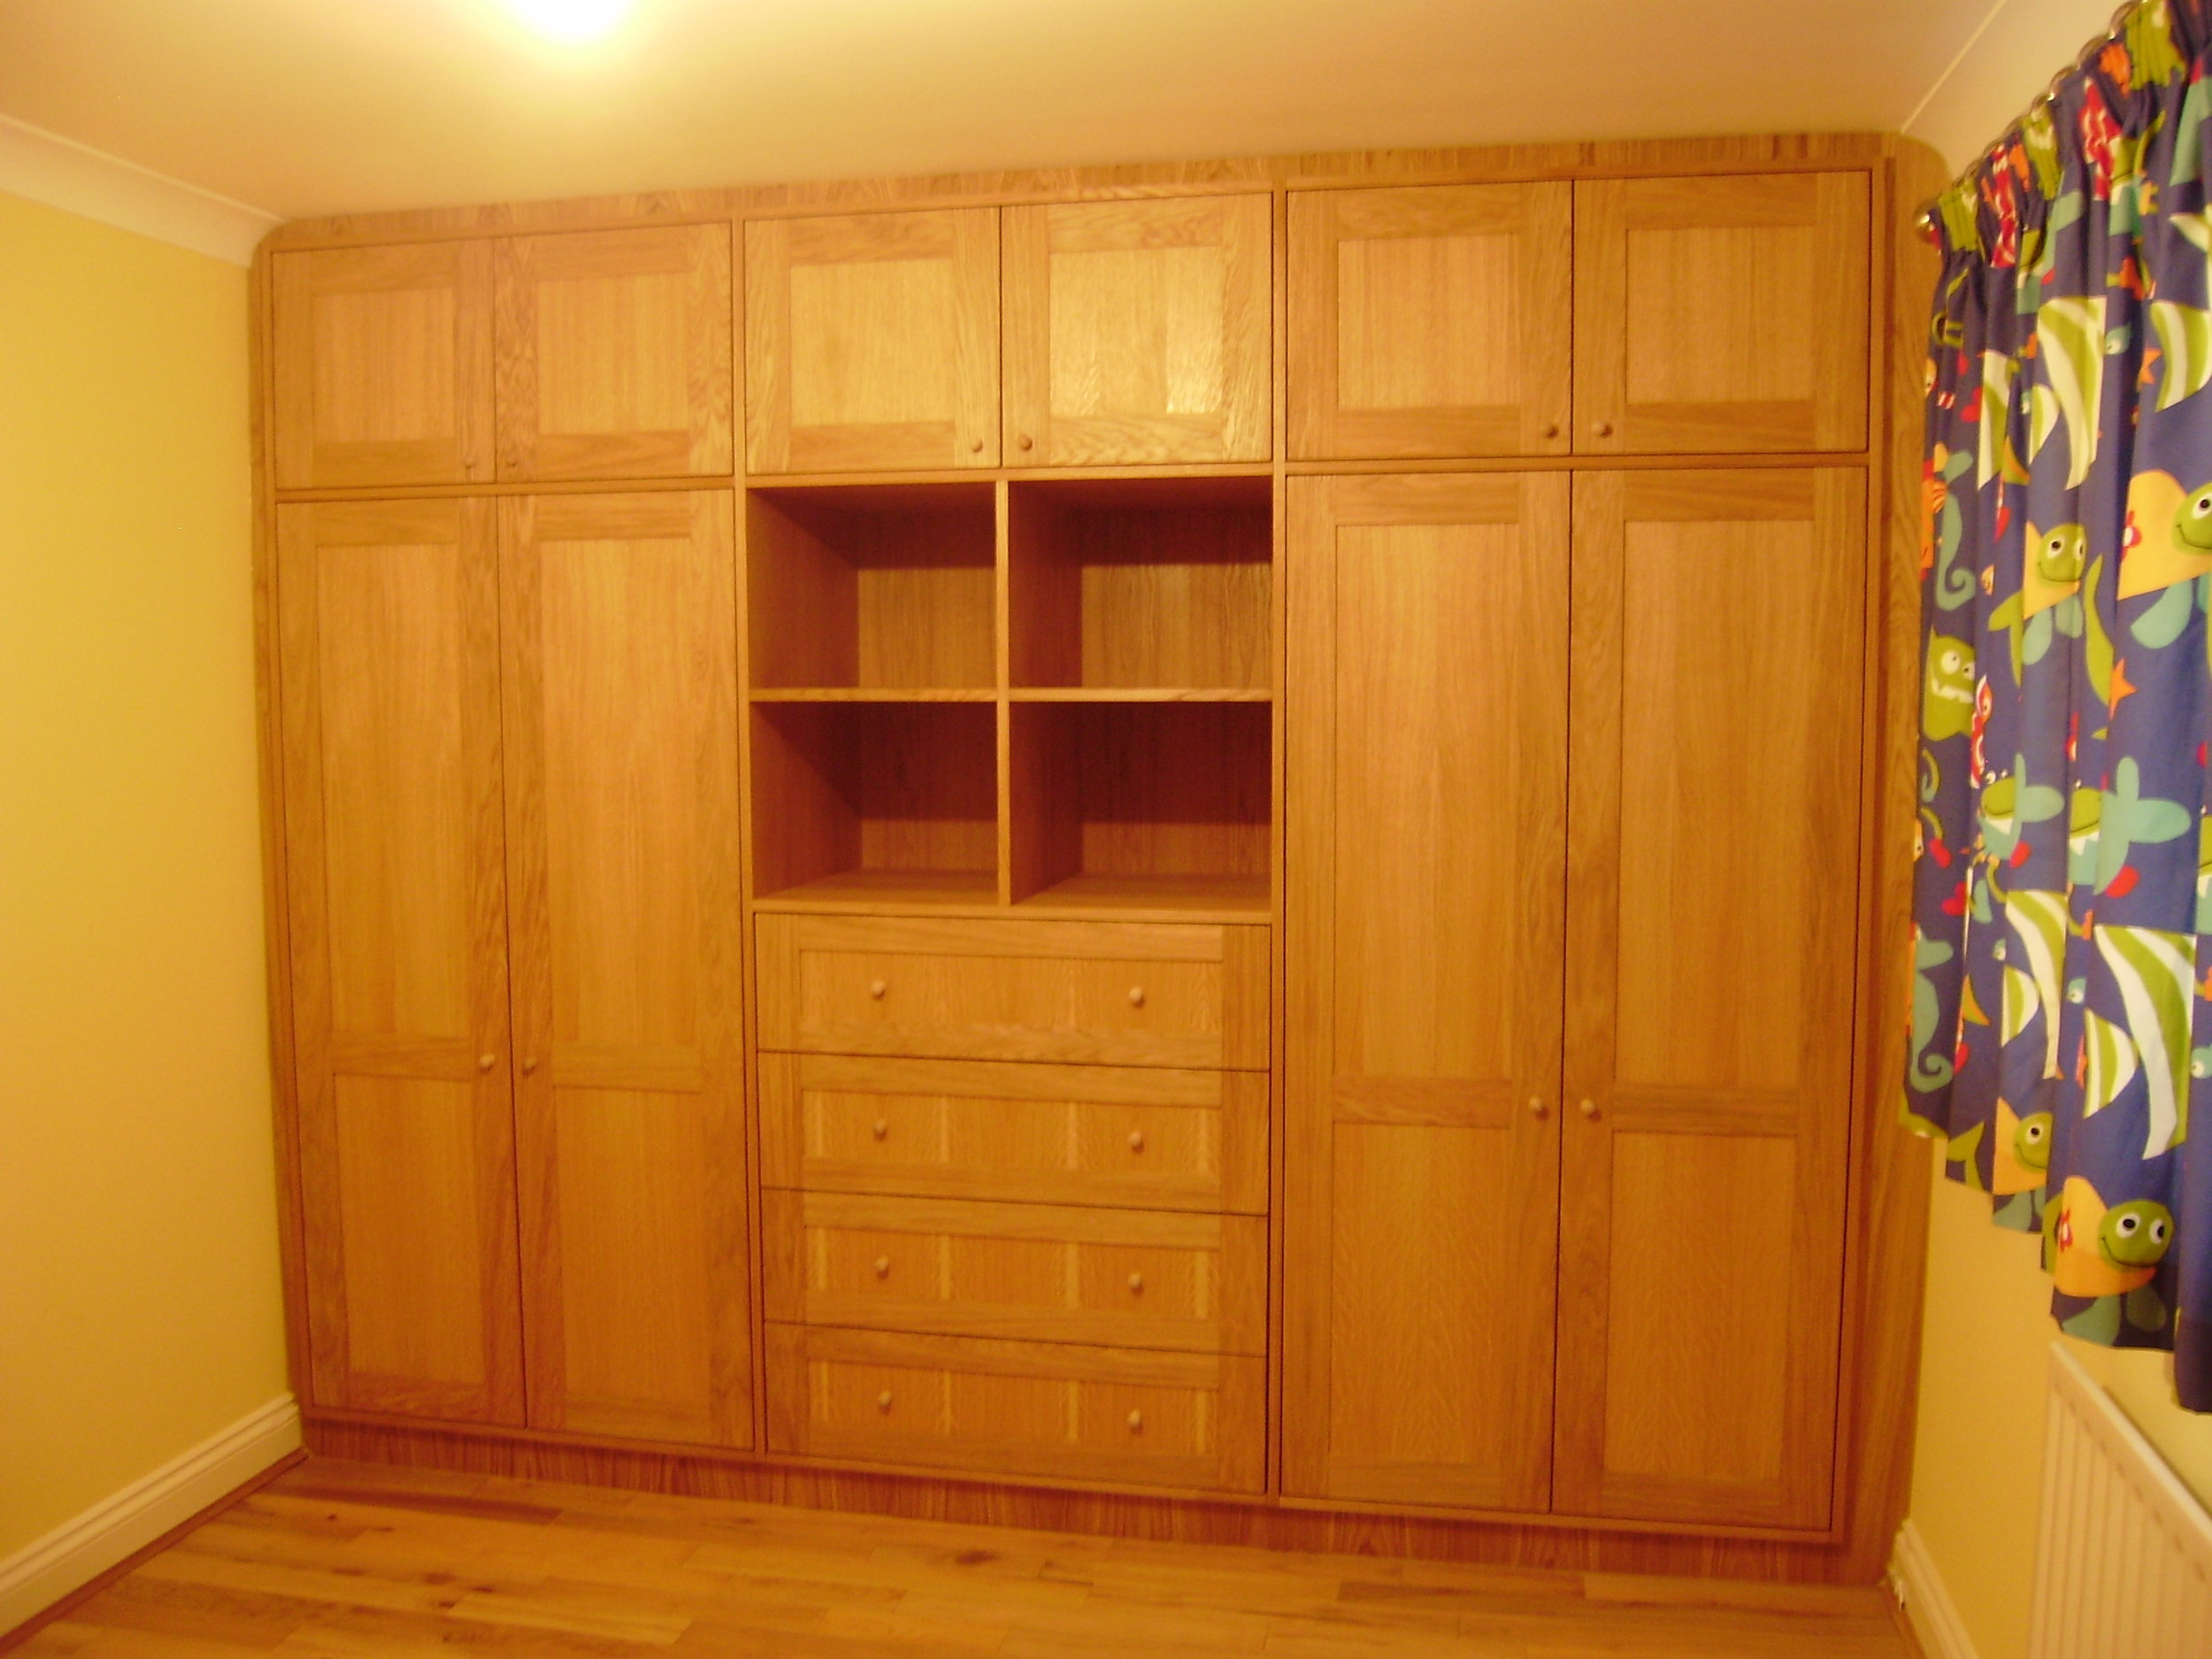 - A combination of hanging space, storage, open shelves and drawers ensure that this wardrobe is as practical as possible. Multiple hanging rail positions have been pre-arranged to accommodated larger clothing sizes as the twins grow.